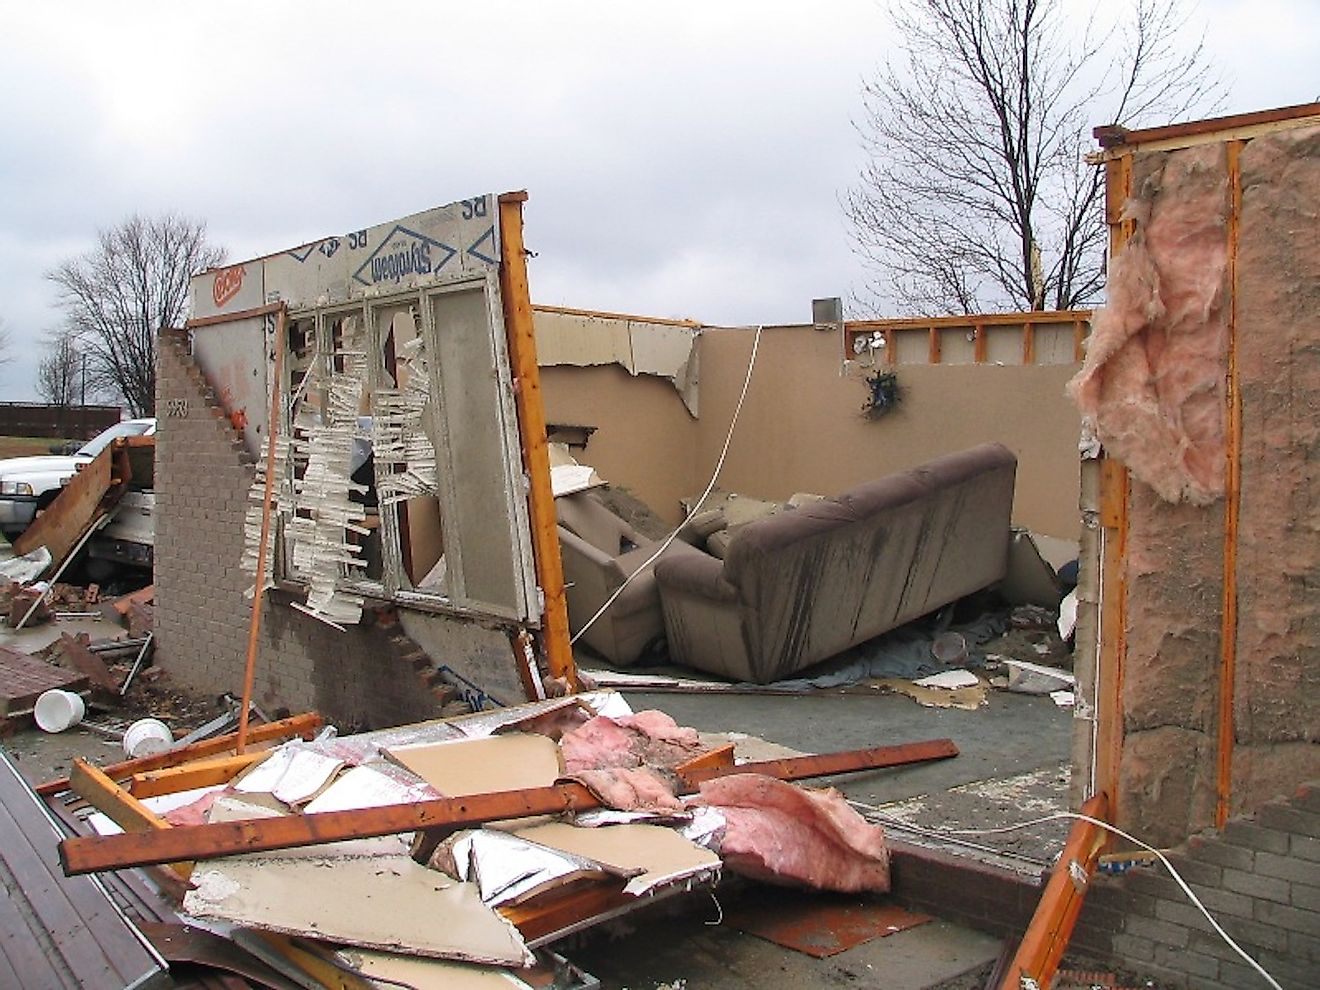 A home destroyed by an EF2 tornado in Dubois County, Indiana. Image credit: National Weather Service/Public domain